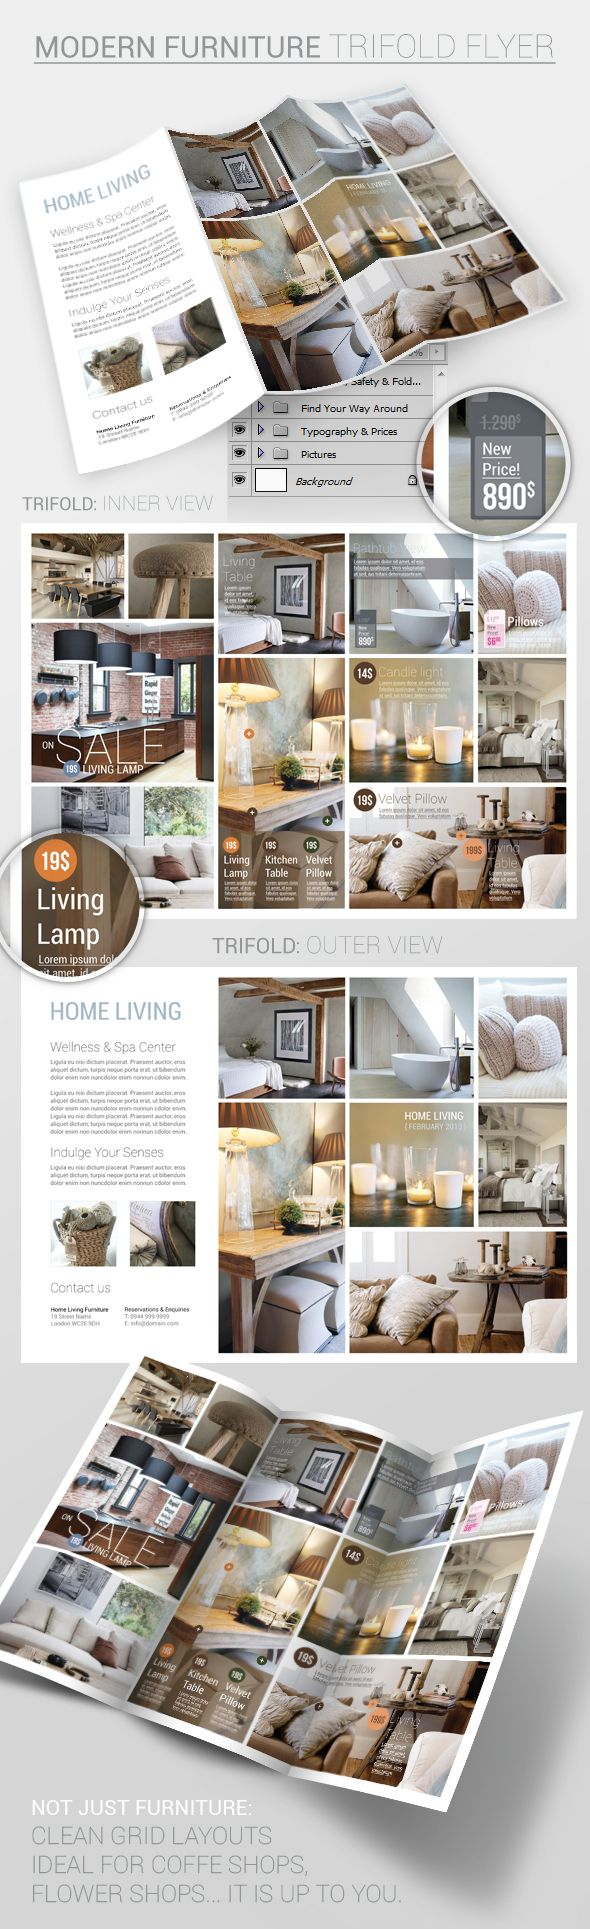 Furniture: Trifold Flyer PSD Template by Nikola Kumburovic, via Behance